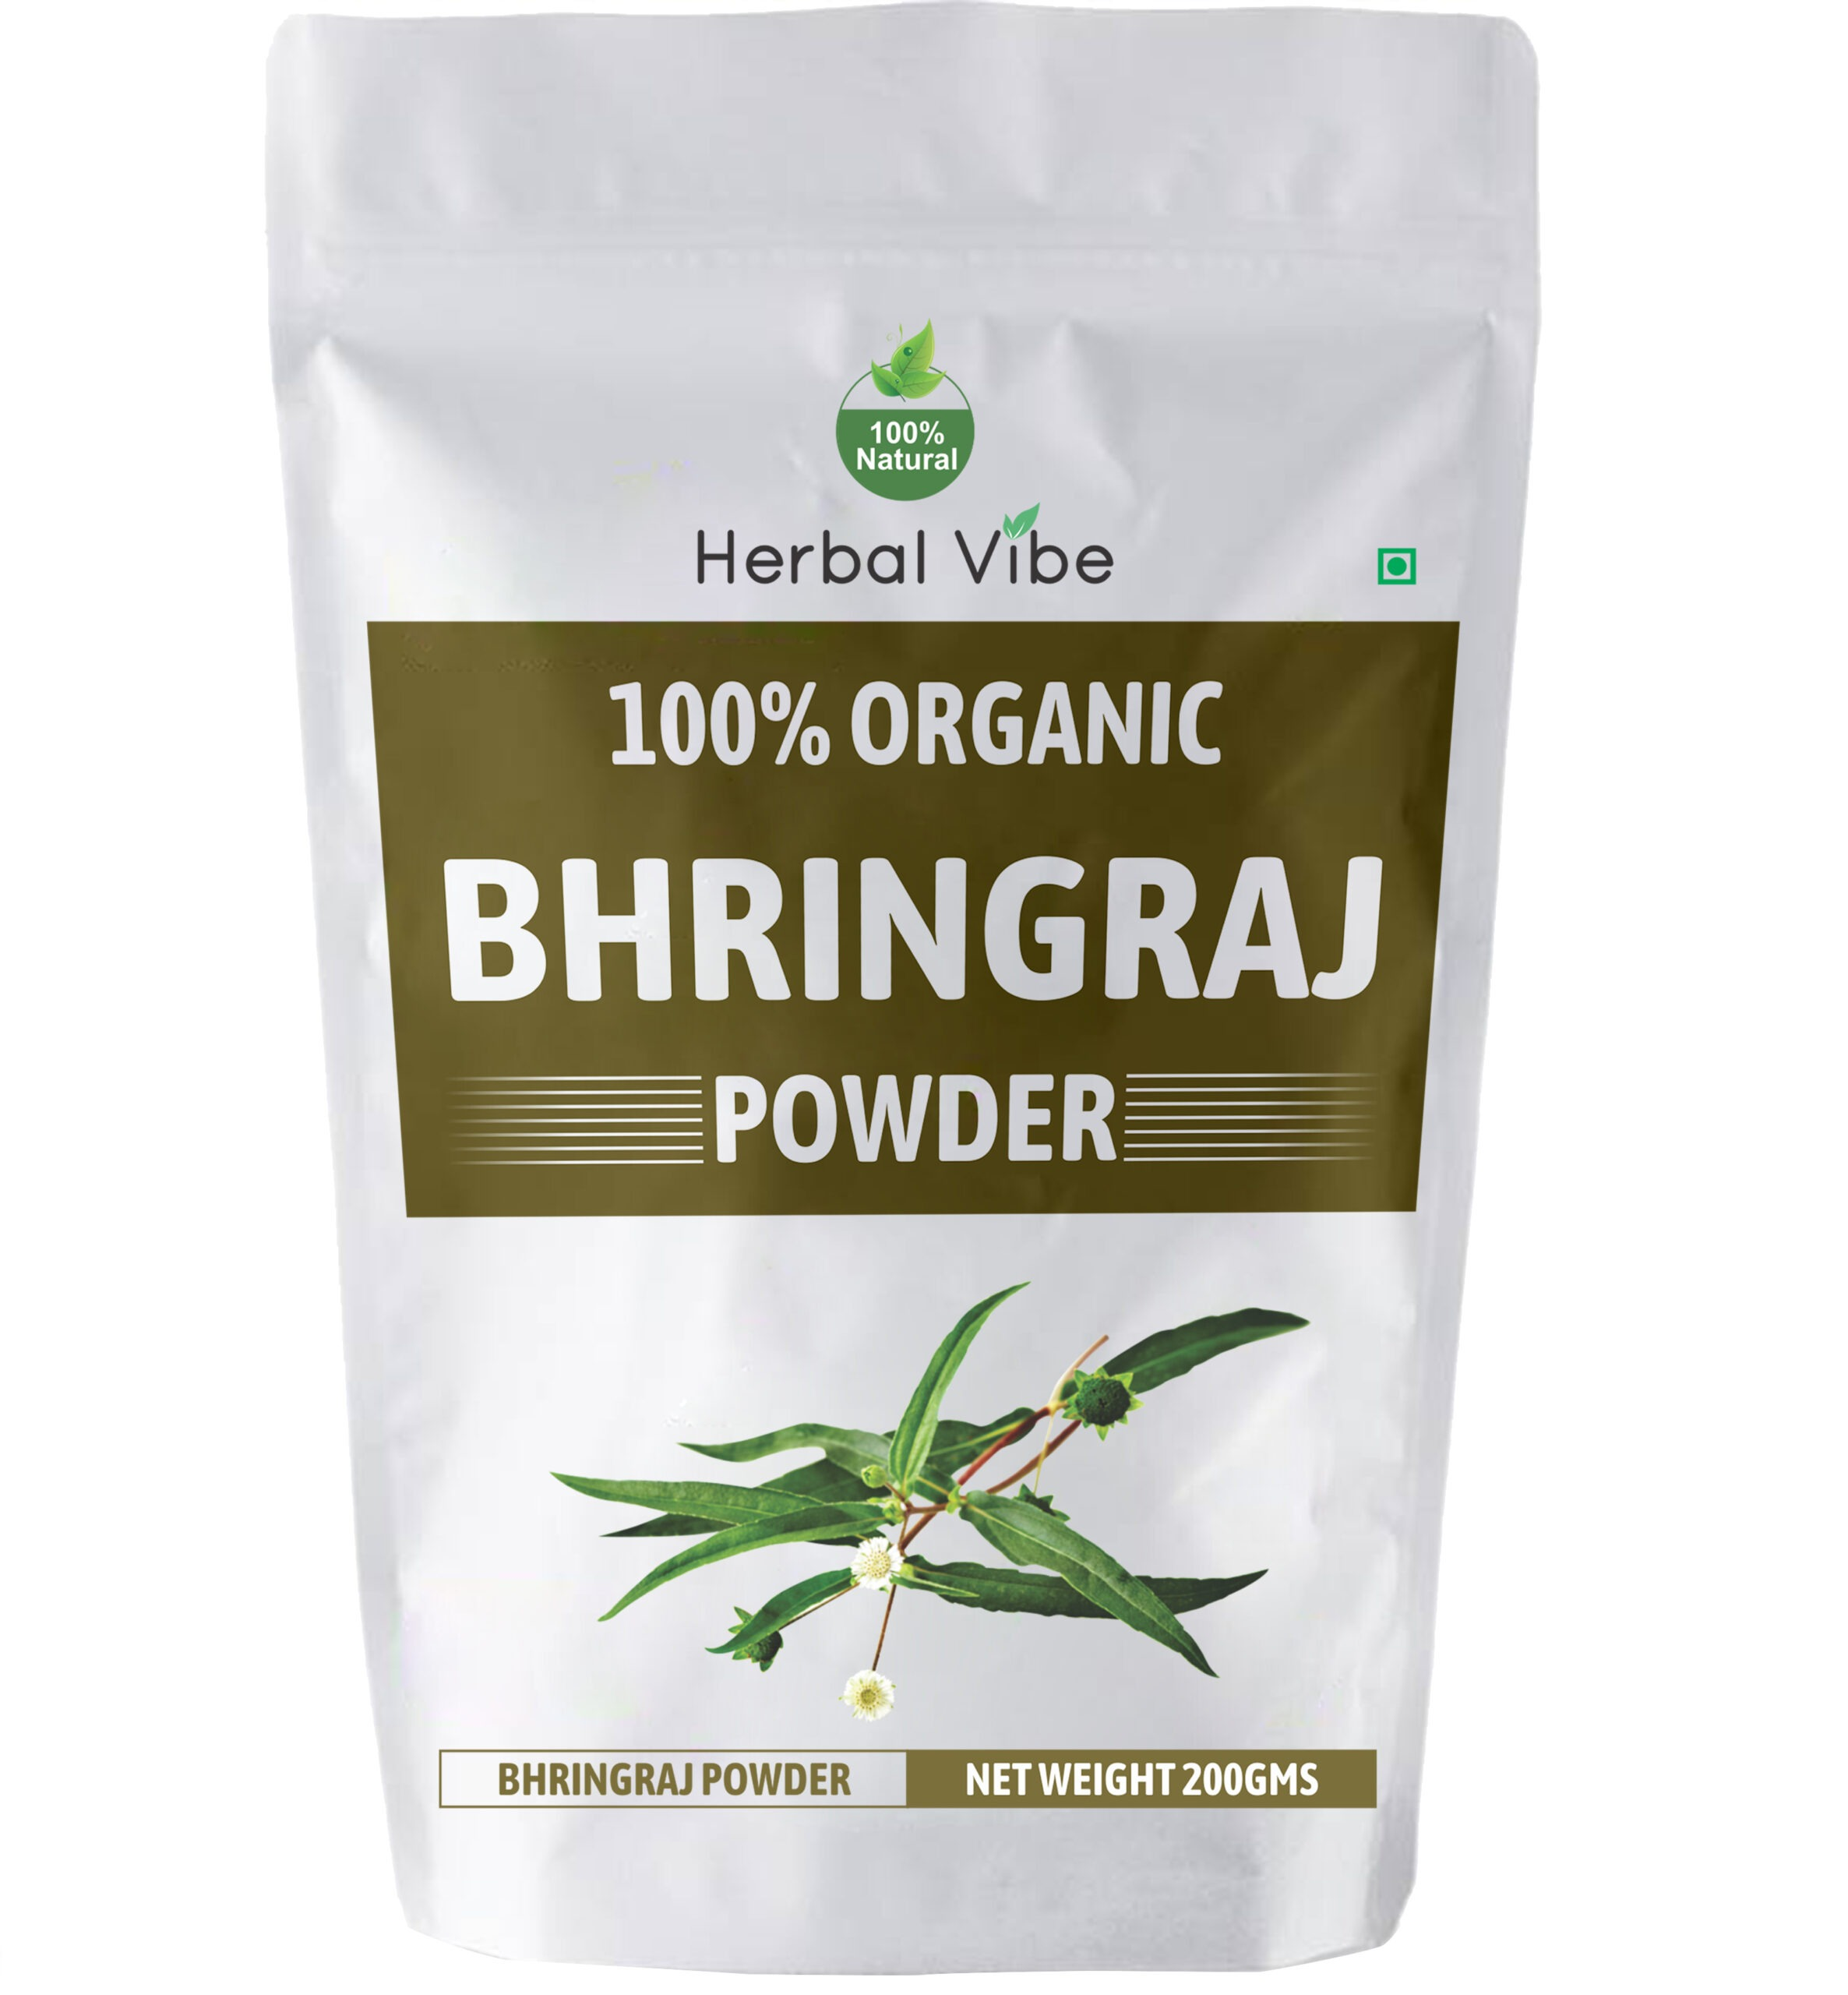 BHRINGRAJ powder